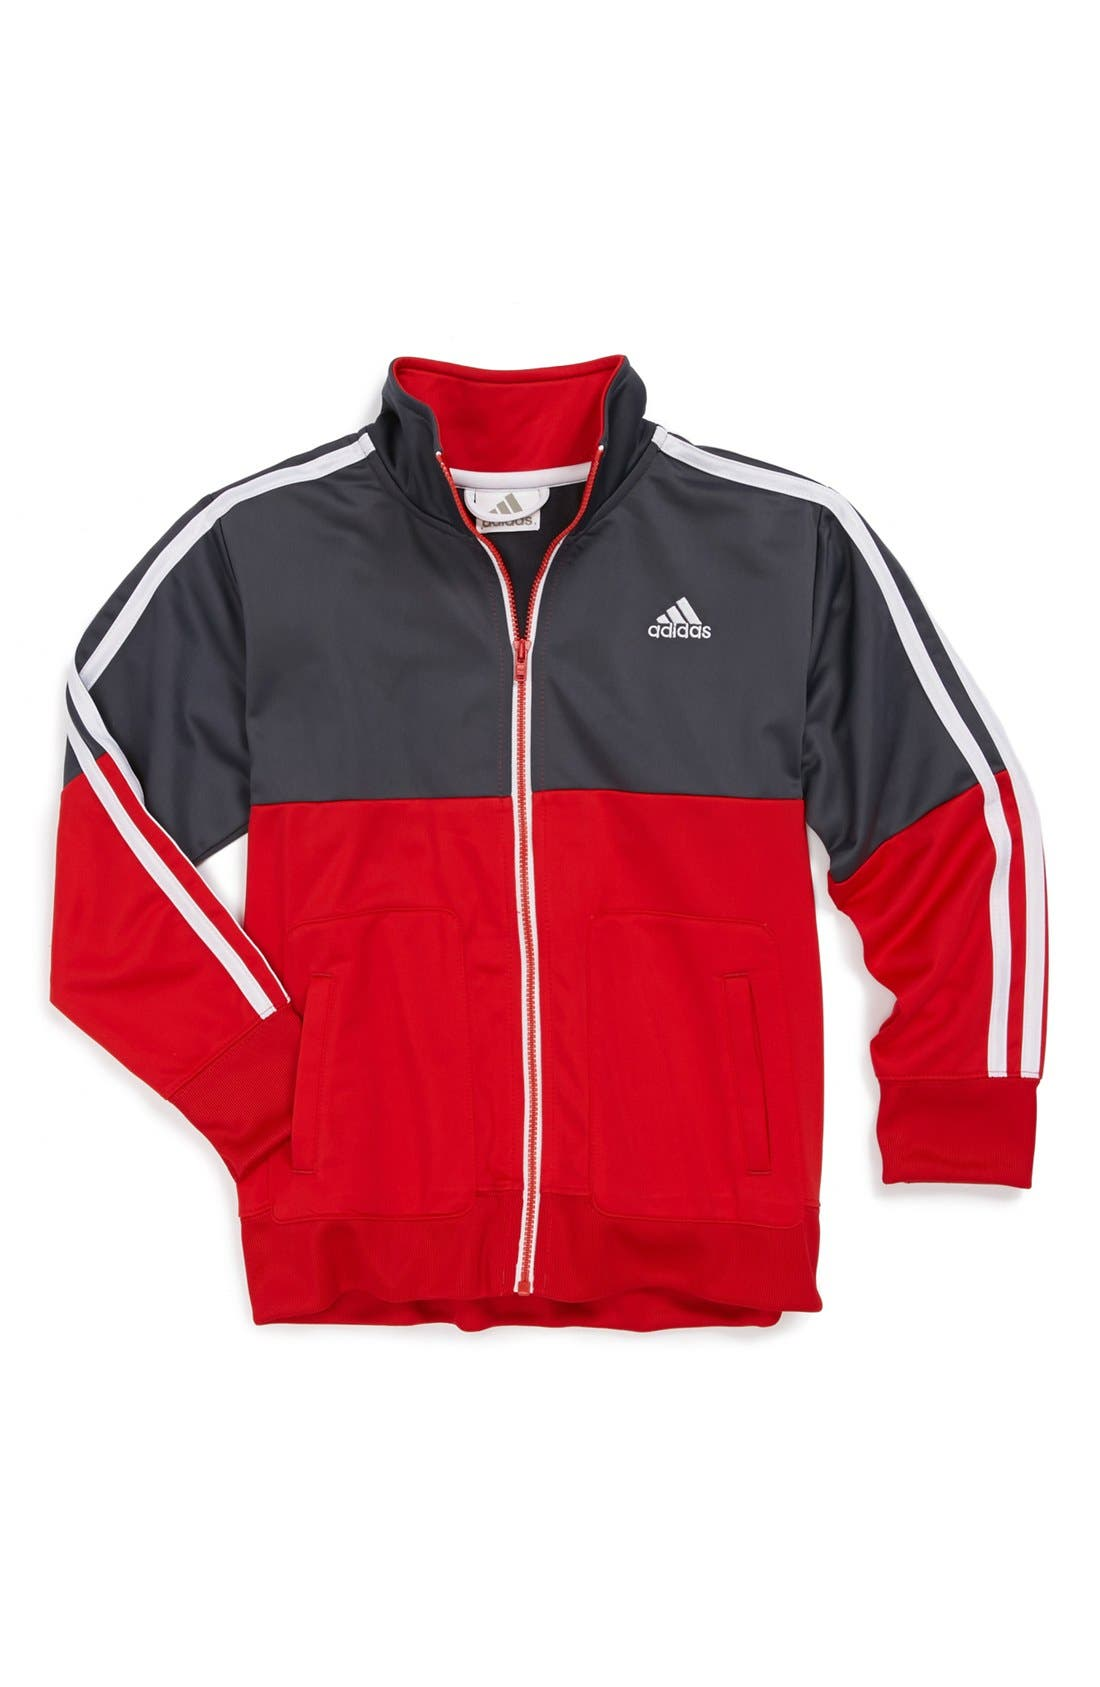 Main Image - adidas 'Divide & Conquer' Tricot Jacket (Little Boys)